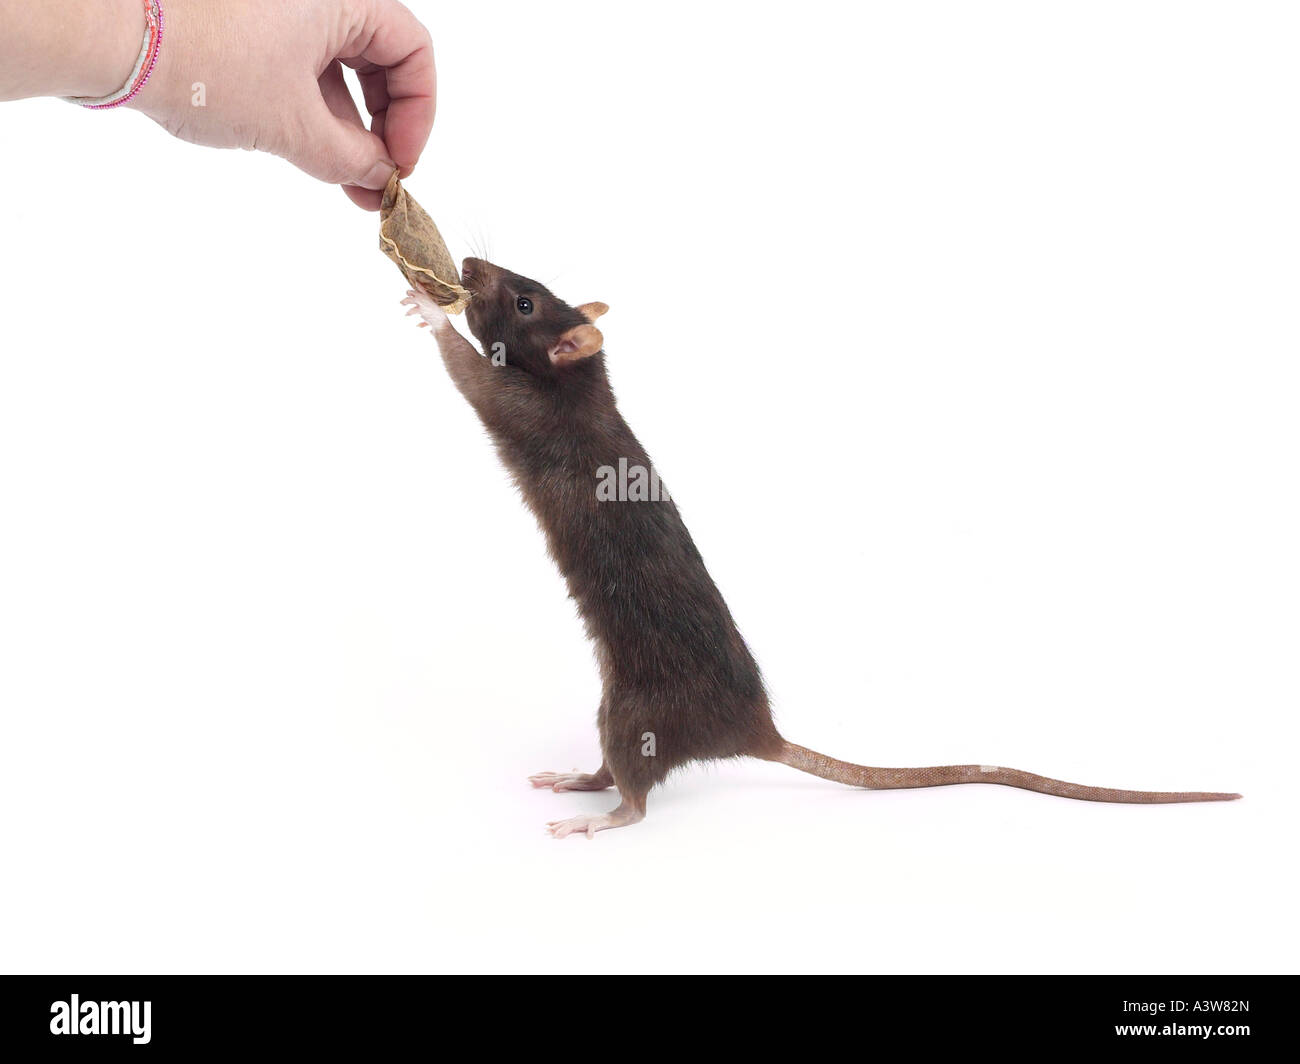 A domesticated rat holding onto a teabag. - Stock Image